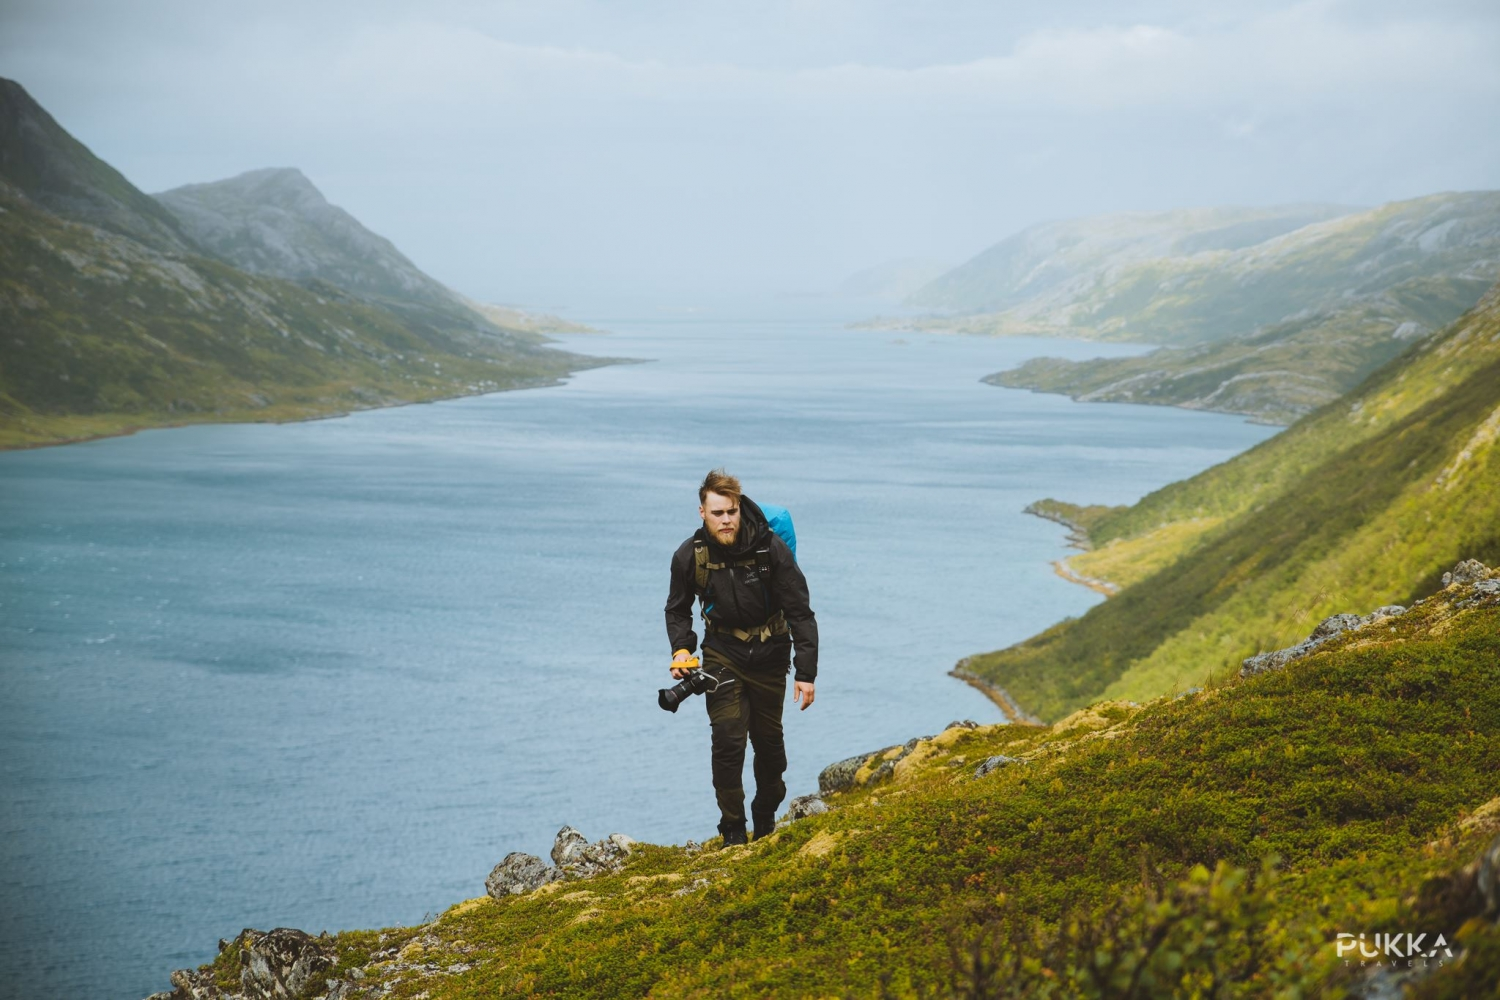 Man hiking on the mountain, fjord in the background